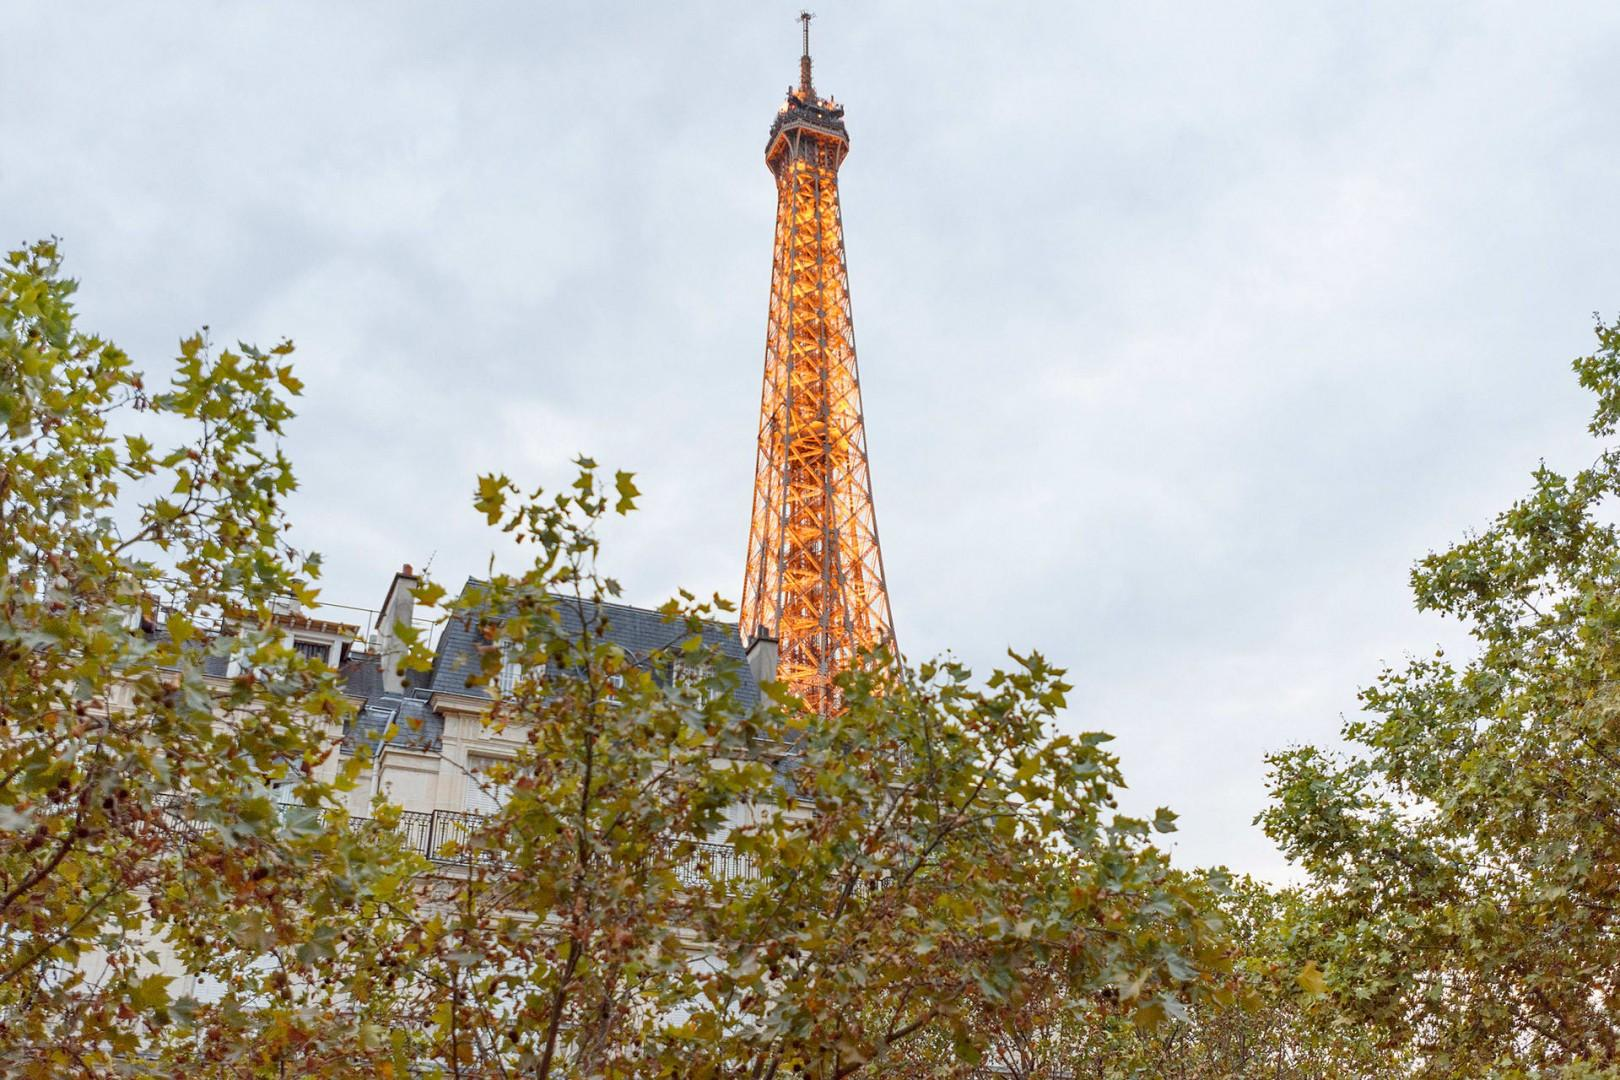 Enjoy the view of the Eiffel Tower peaking over rooftops.